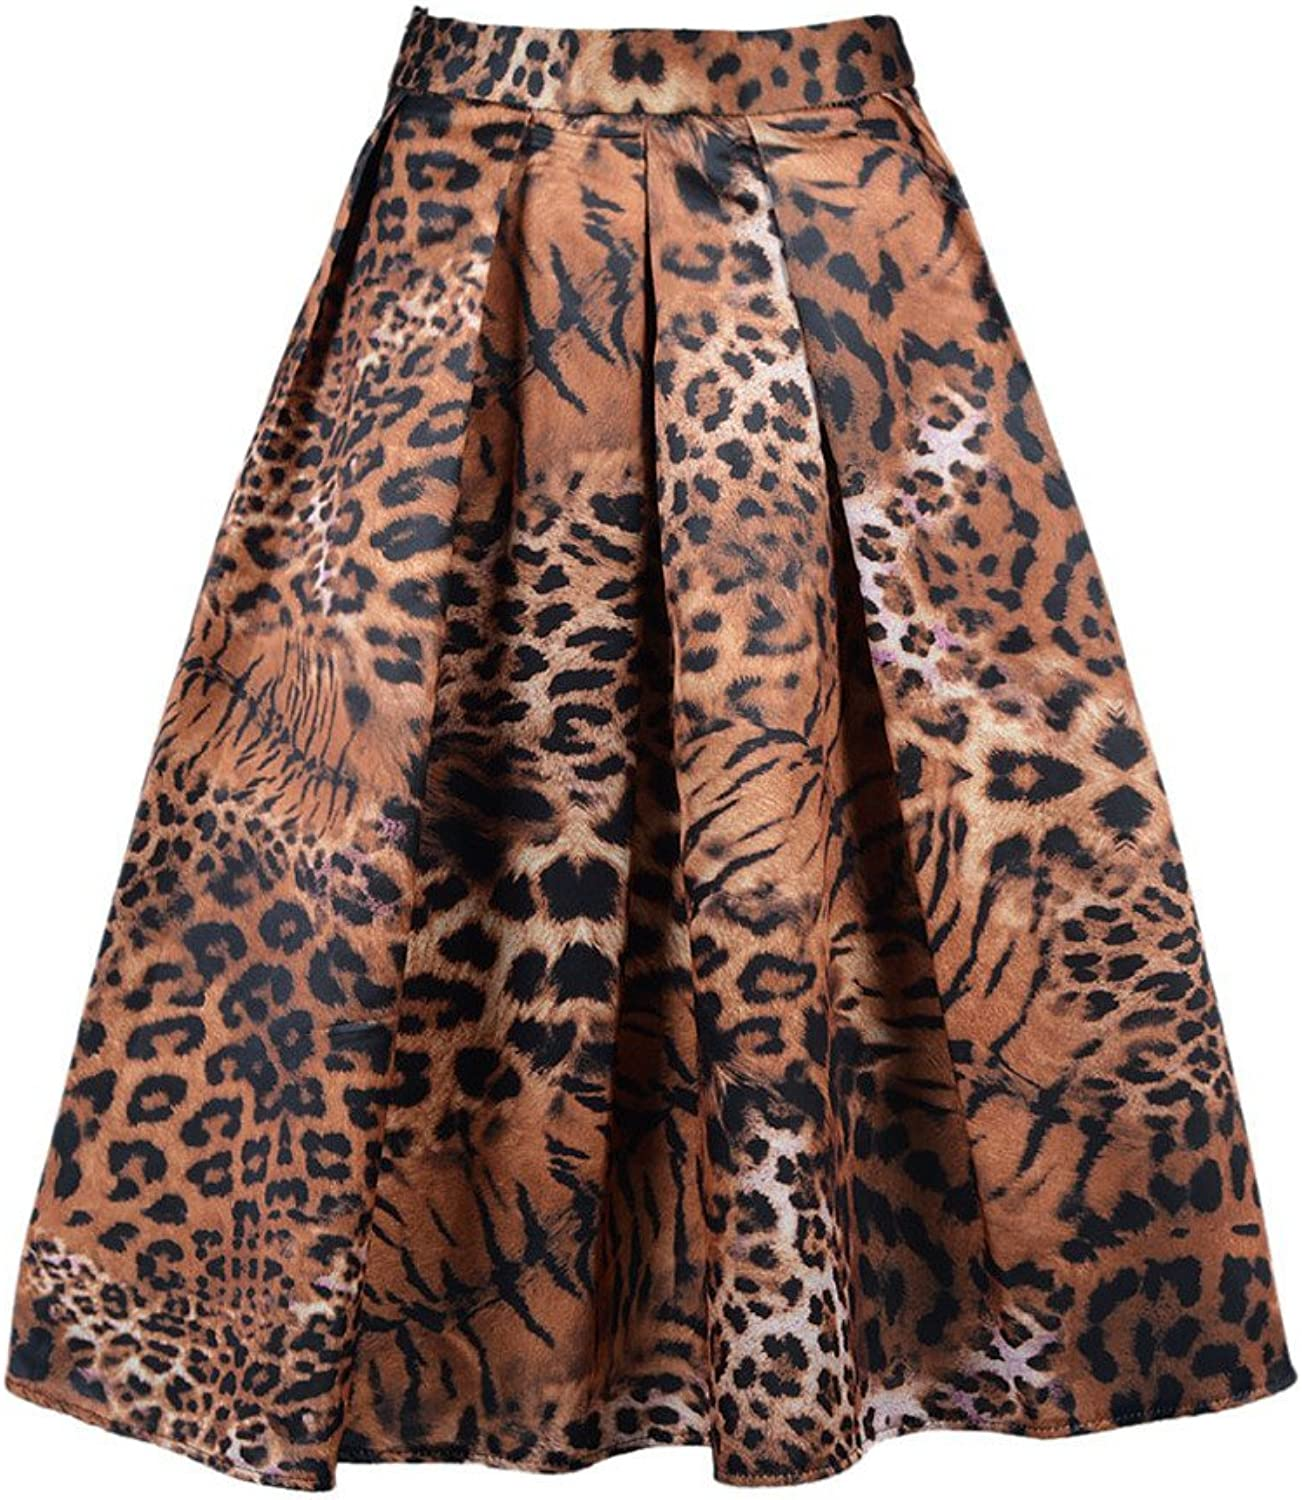 CHARLES RICHARDS CR Women's Print Floral Tiger Pattern Midi Skirt